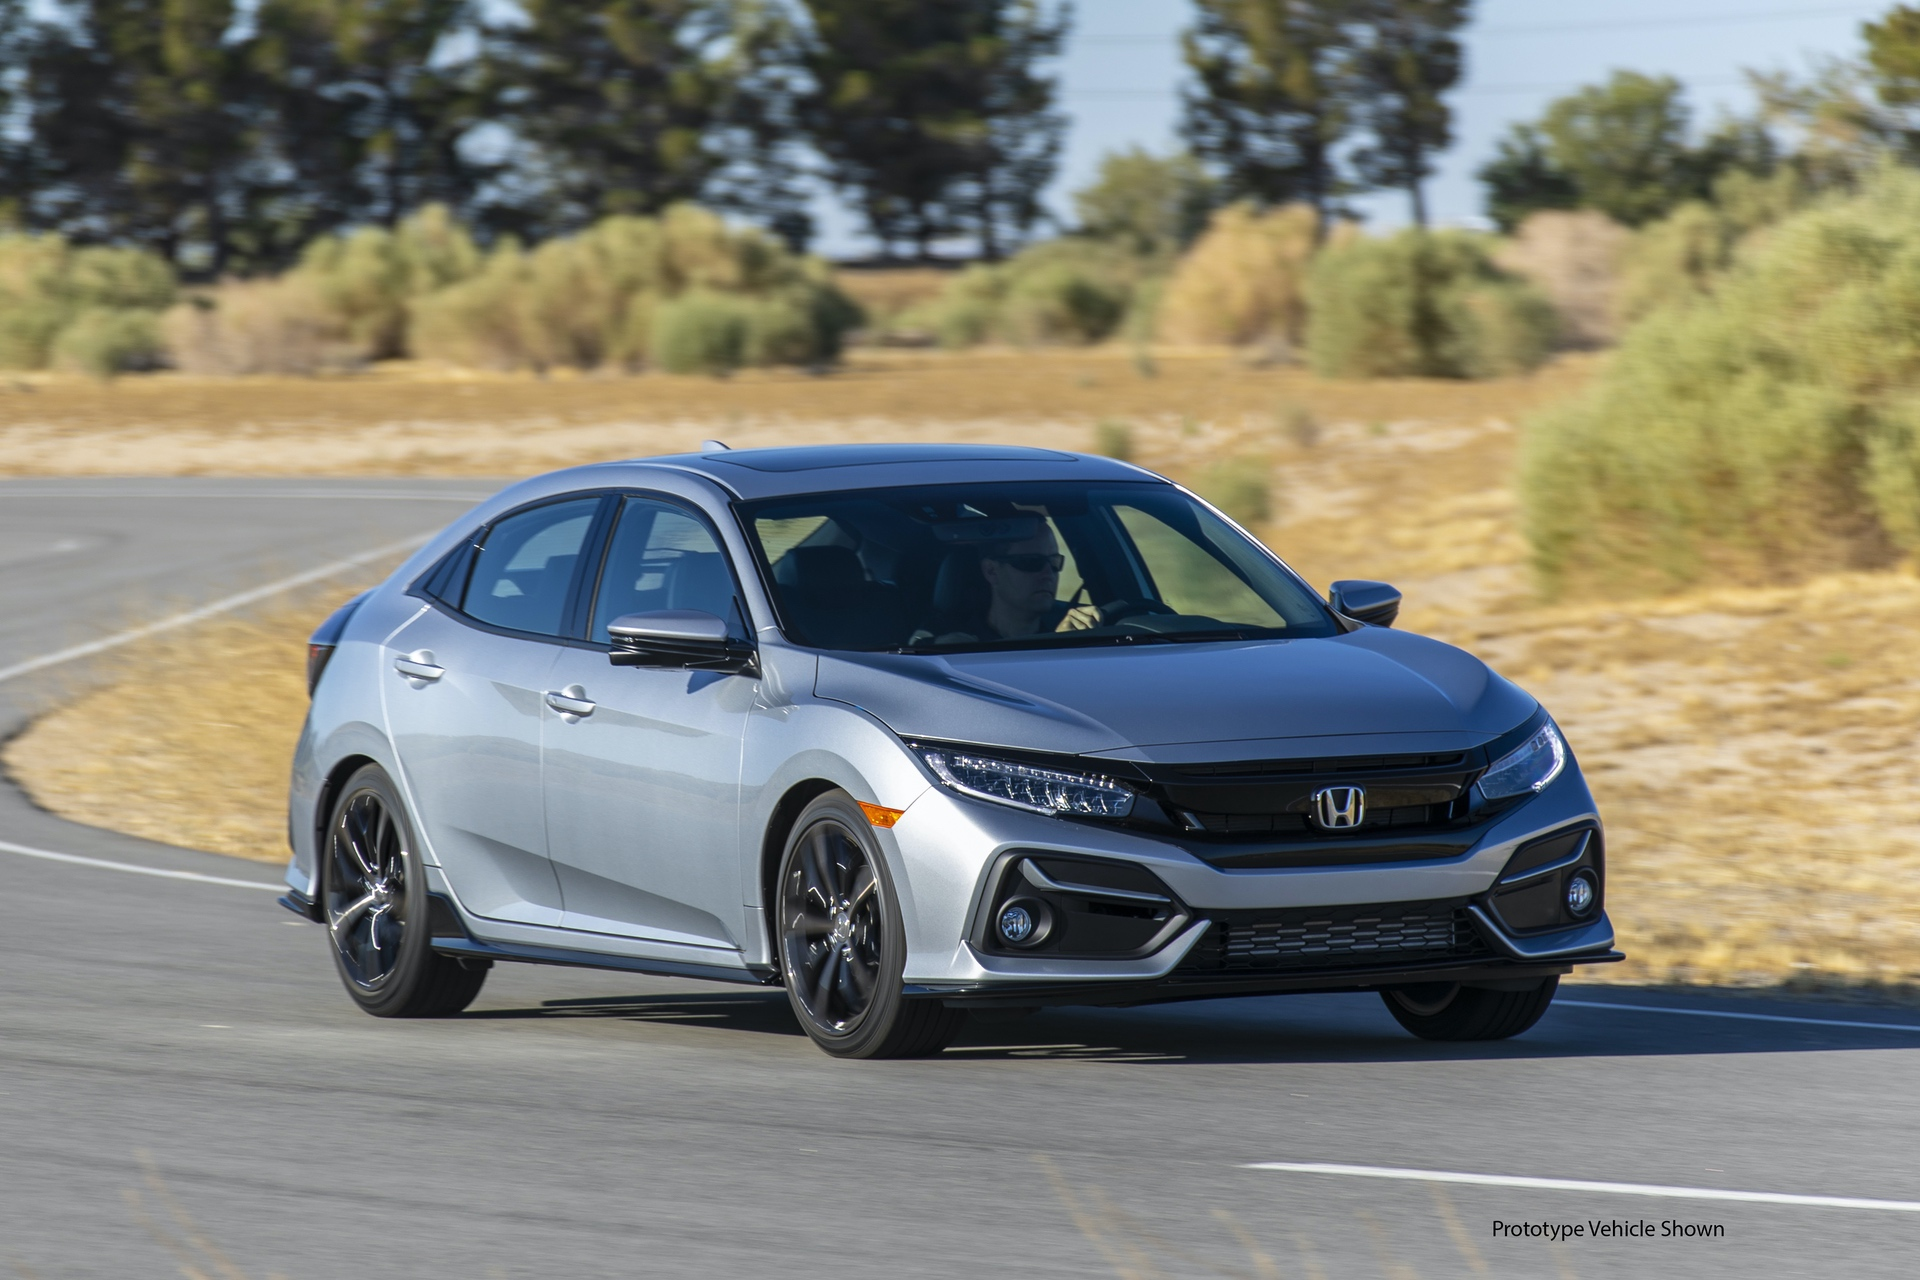 Honda_Civic_facelift_US-spec_0003